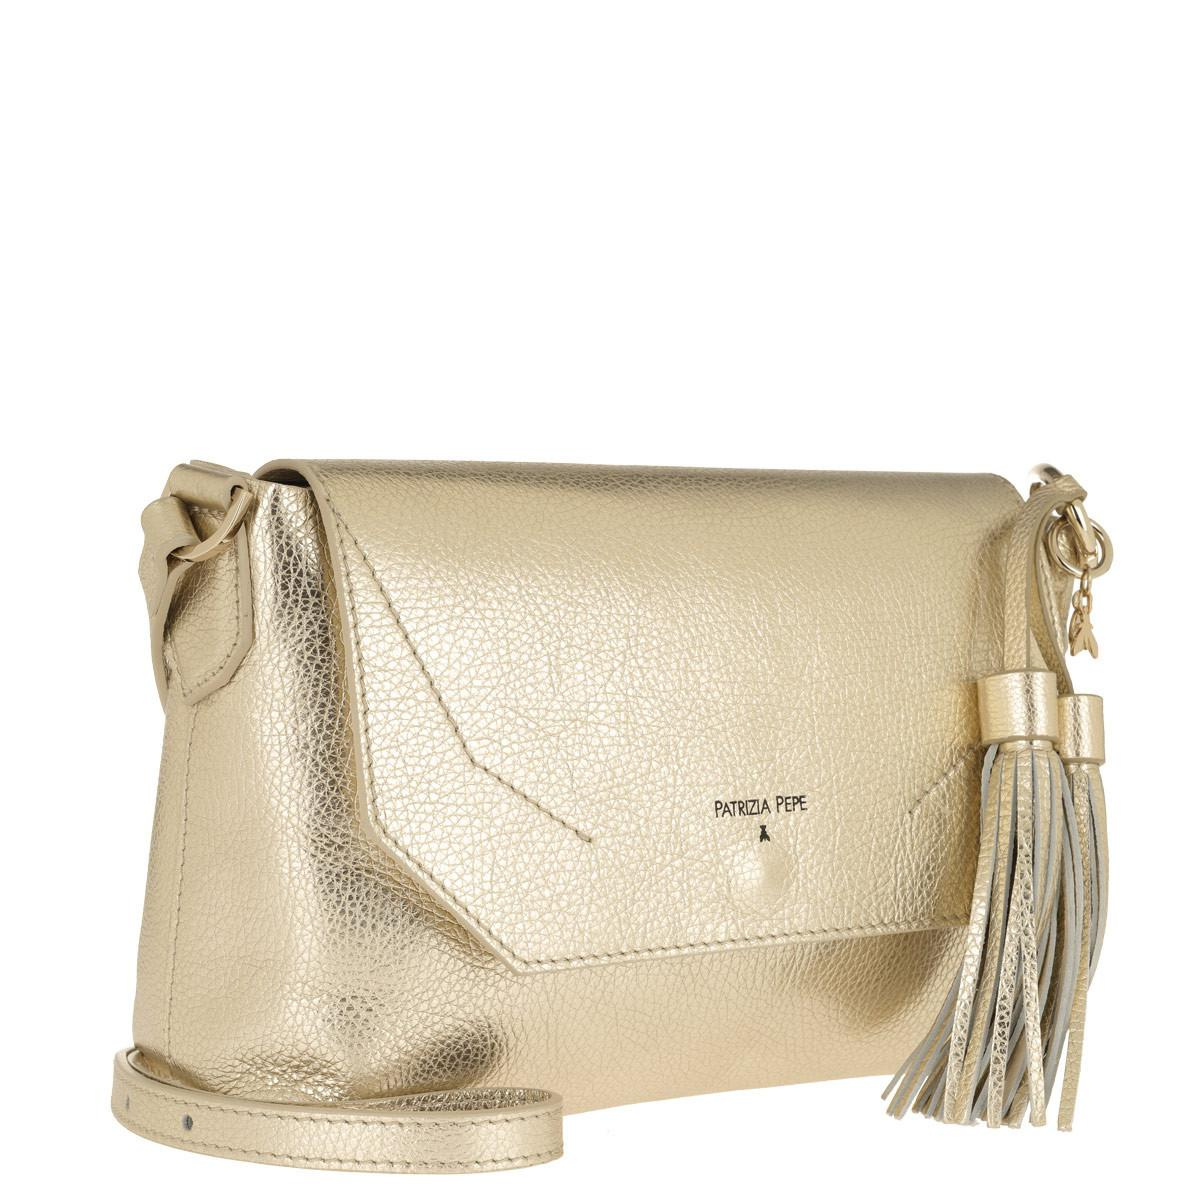 9ef160e812 Patrizia Pepe Flap Crossbody Bag Platinum moon Sand in Natural - Lyst